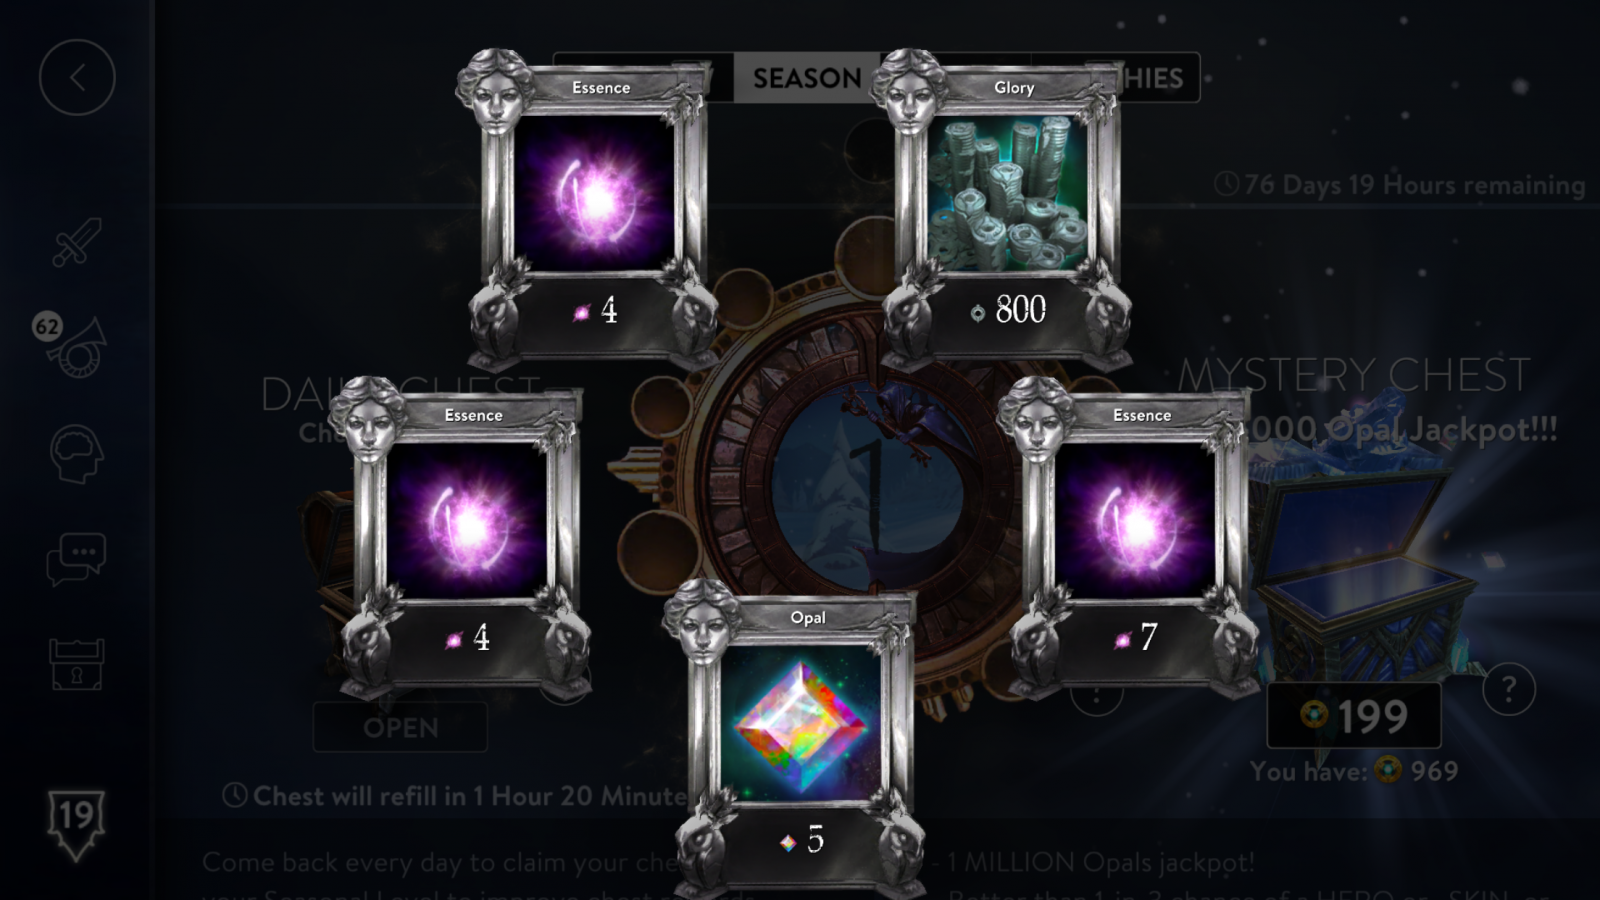 First 2.0 Mystery Chest roll 7